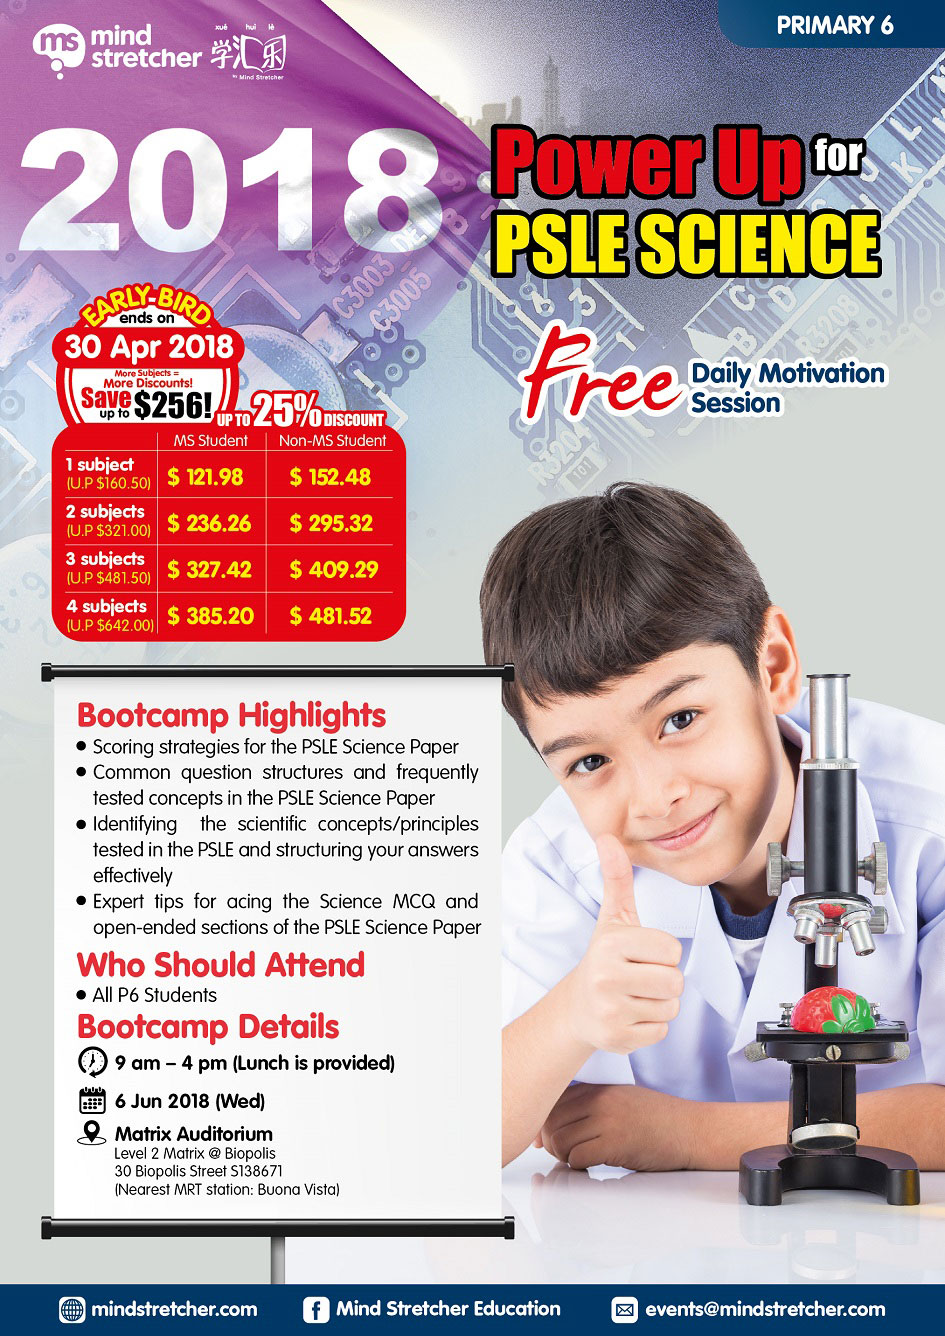 PSLE Power Up 2018